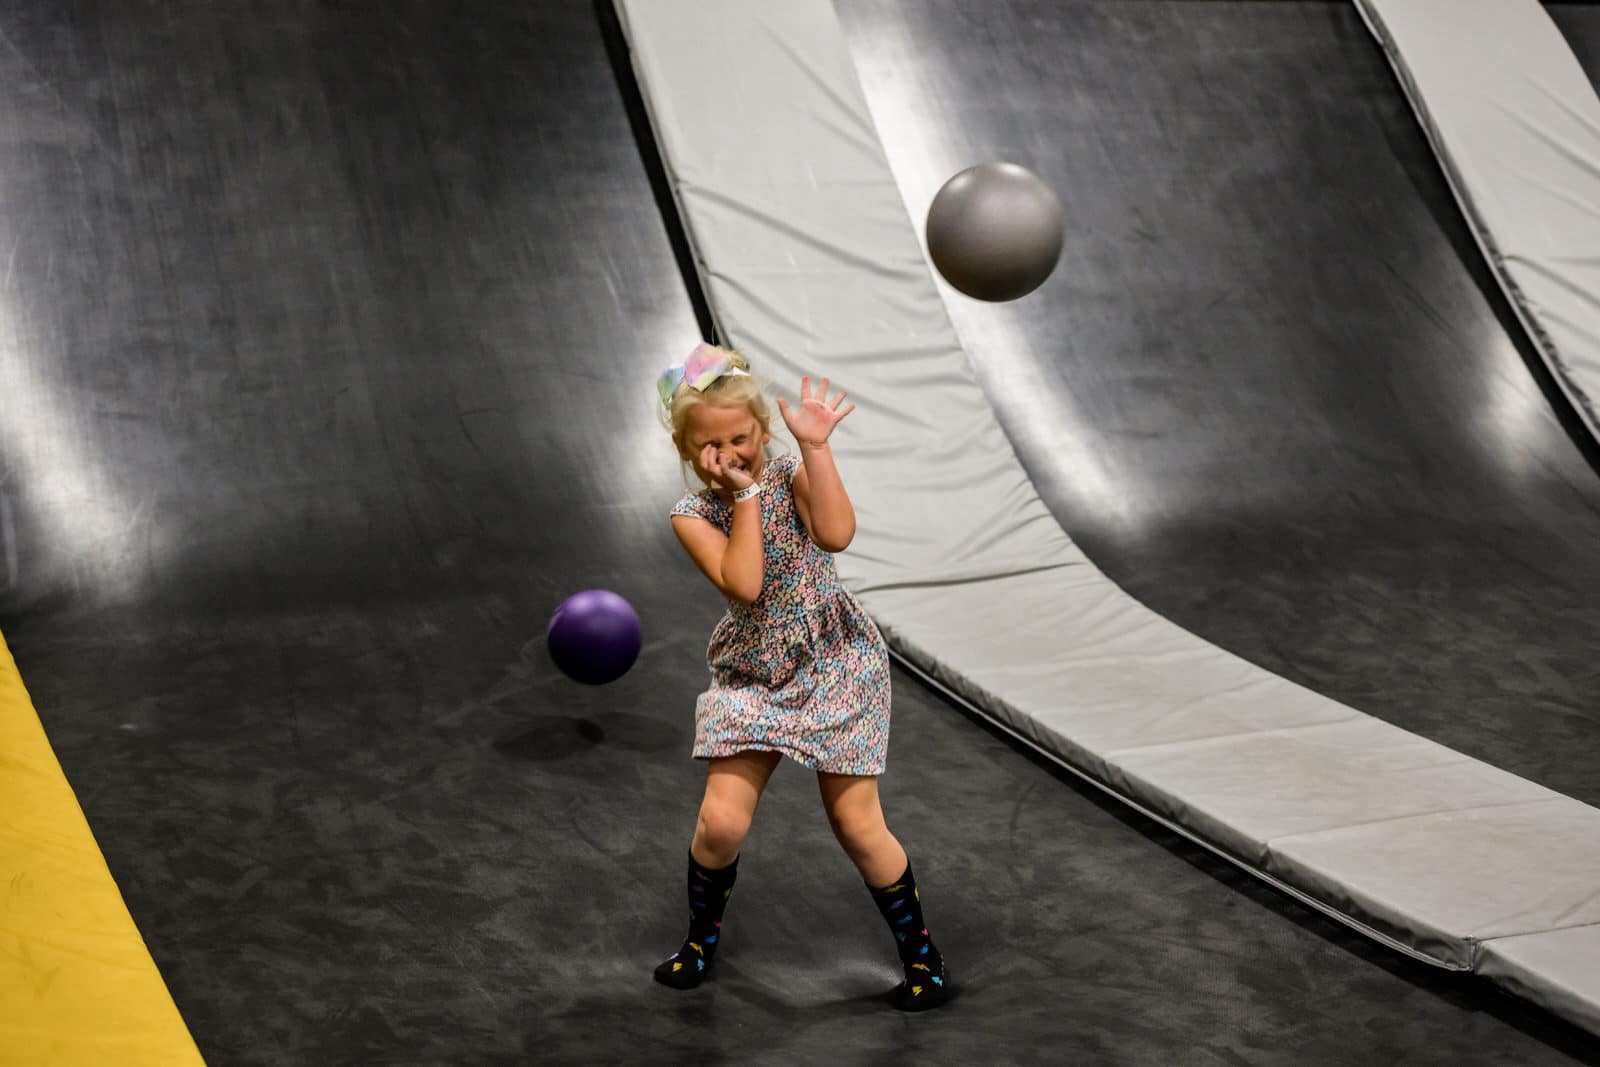 girl prepares to be hit by a dodge ball